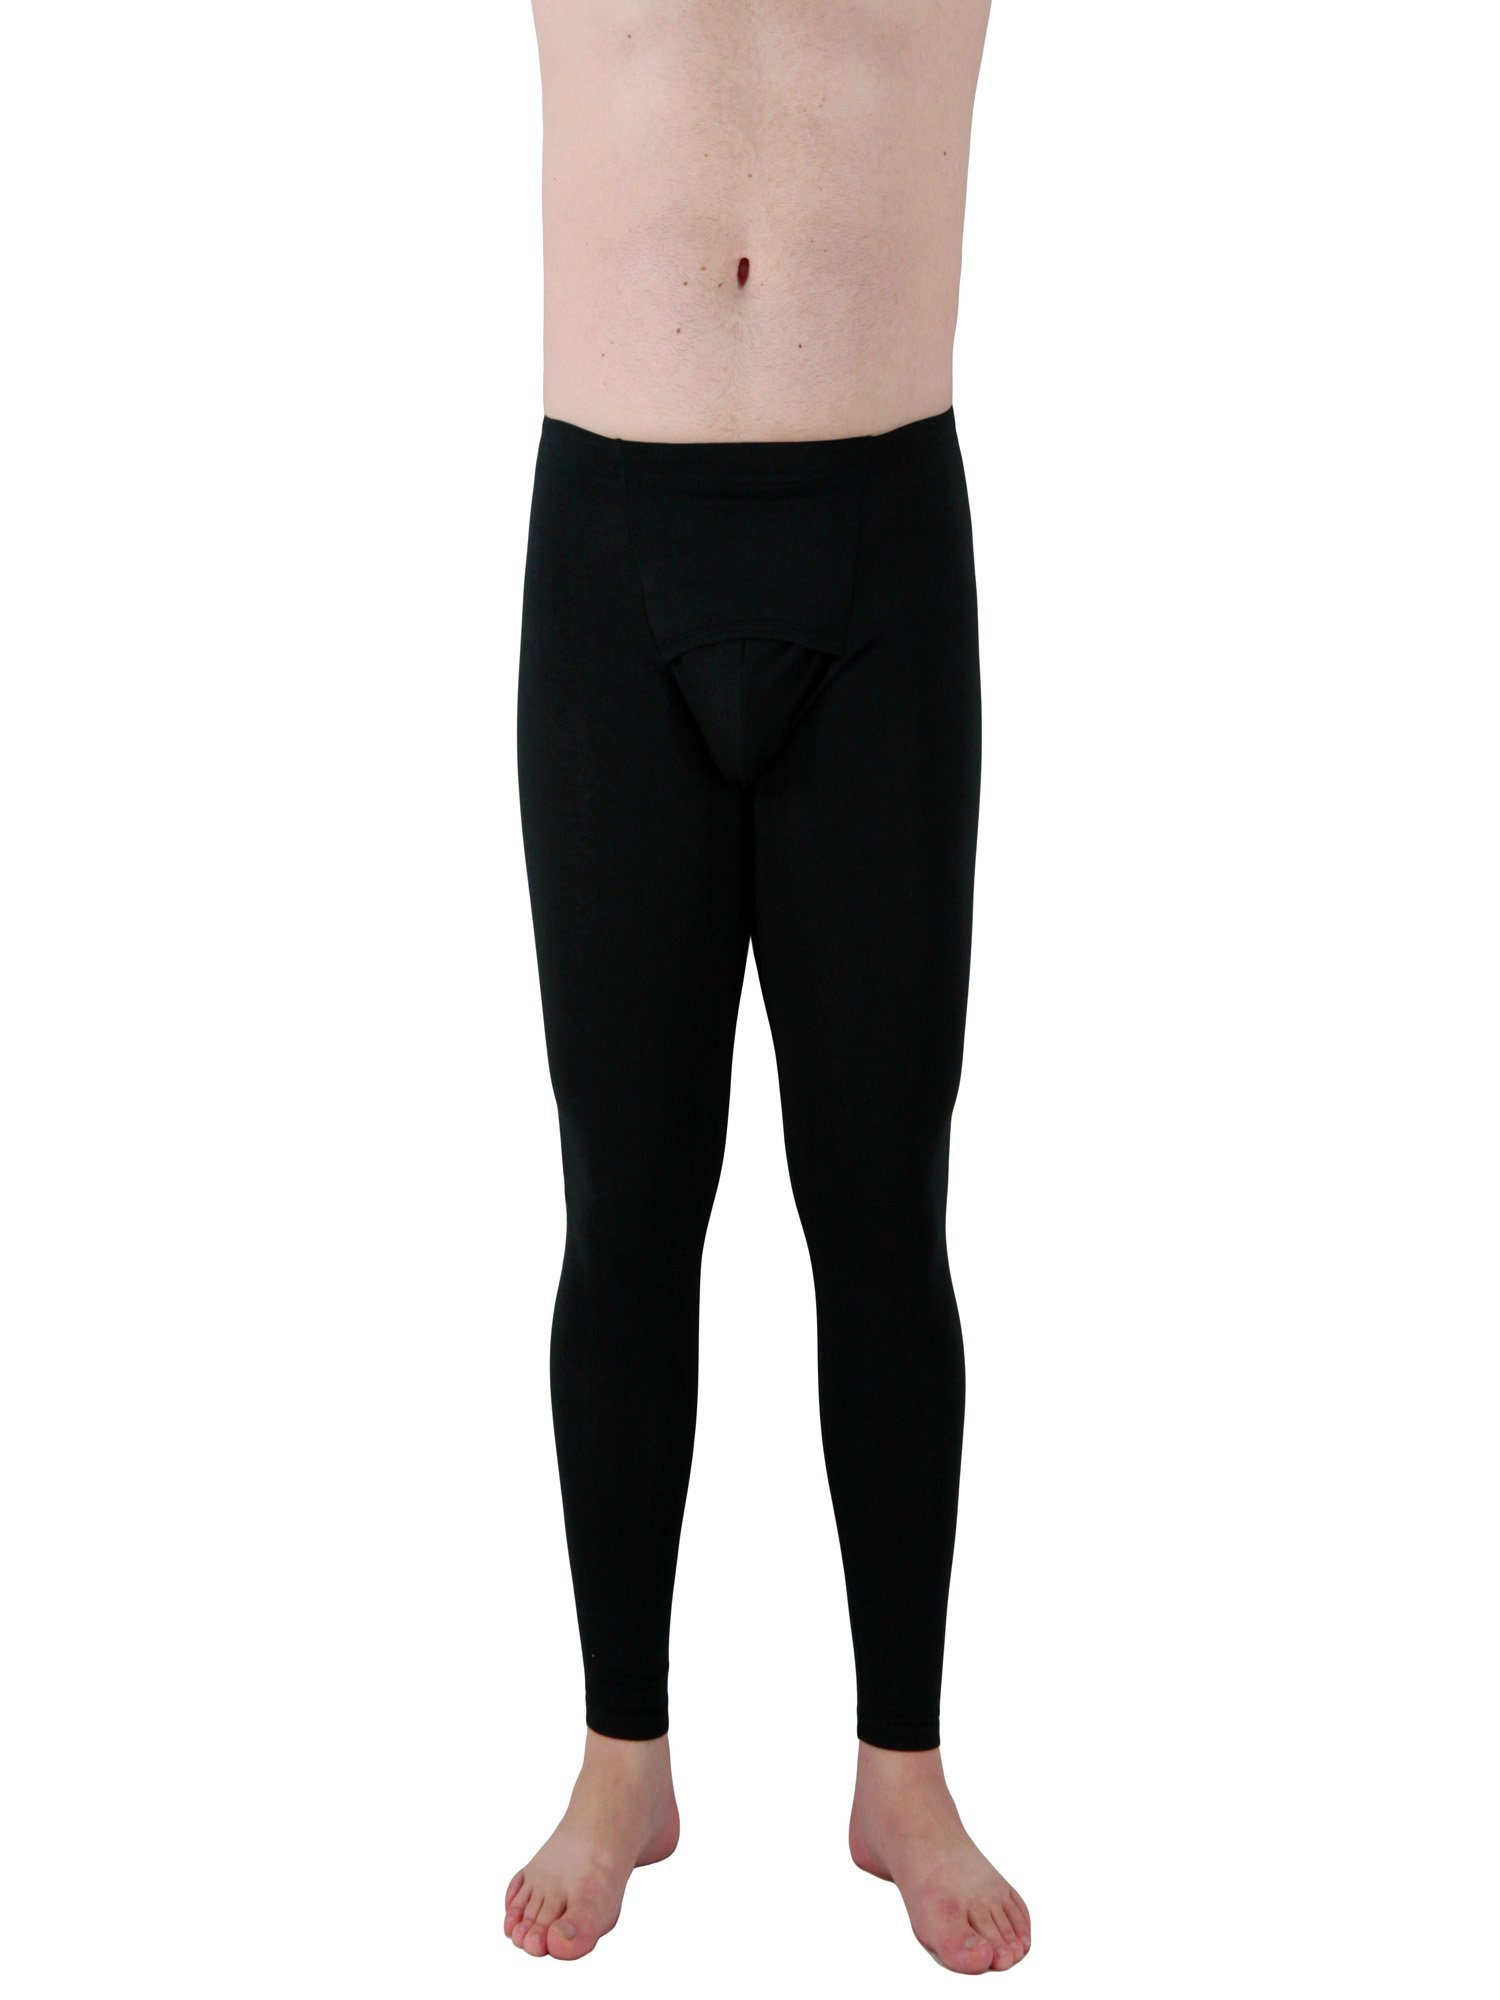 Underworks Cotton Spandex Ultra Light Compression Tights, Leggings, Base Layer 3X Black